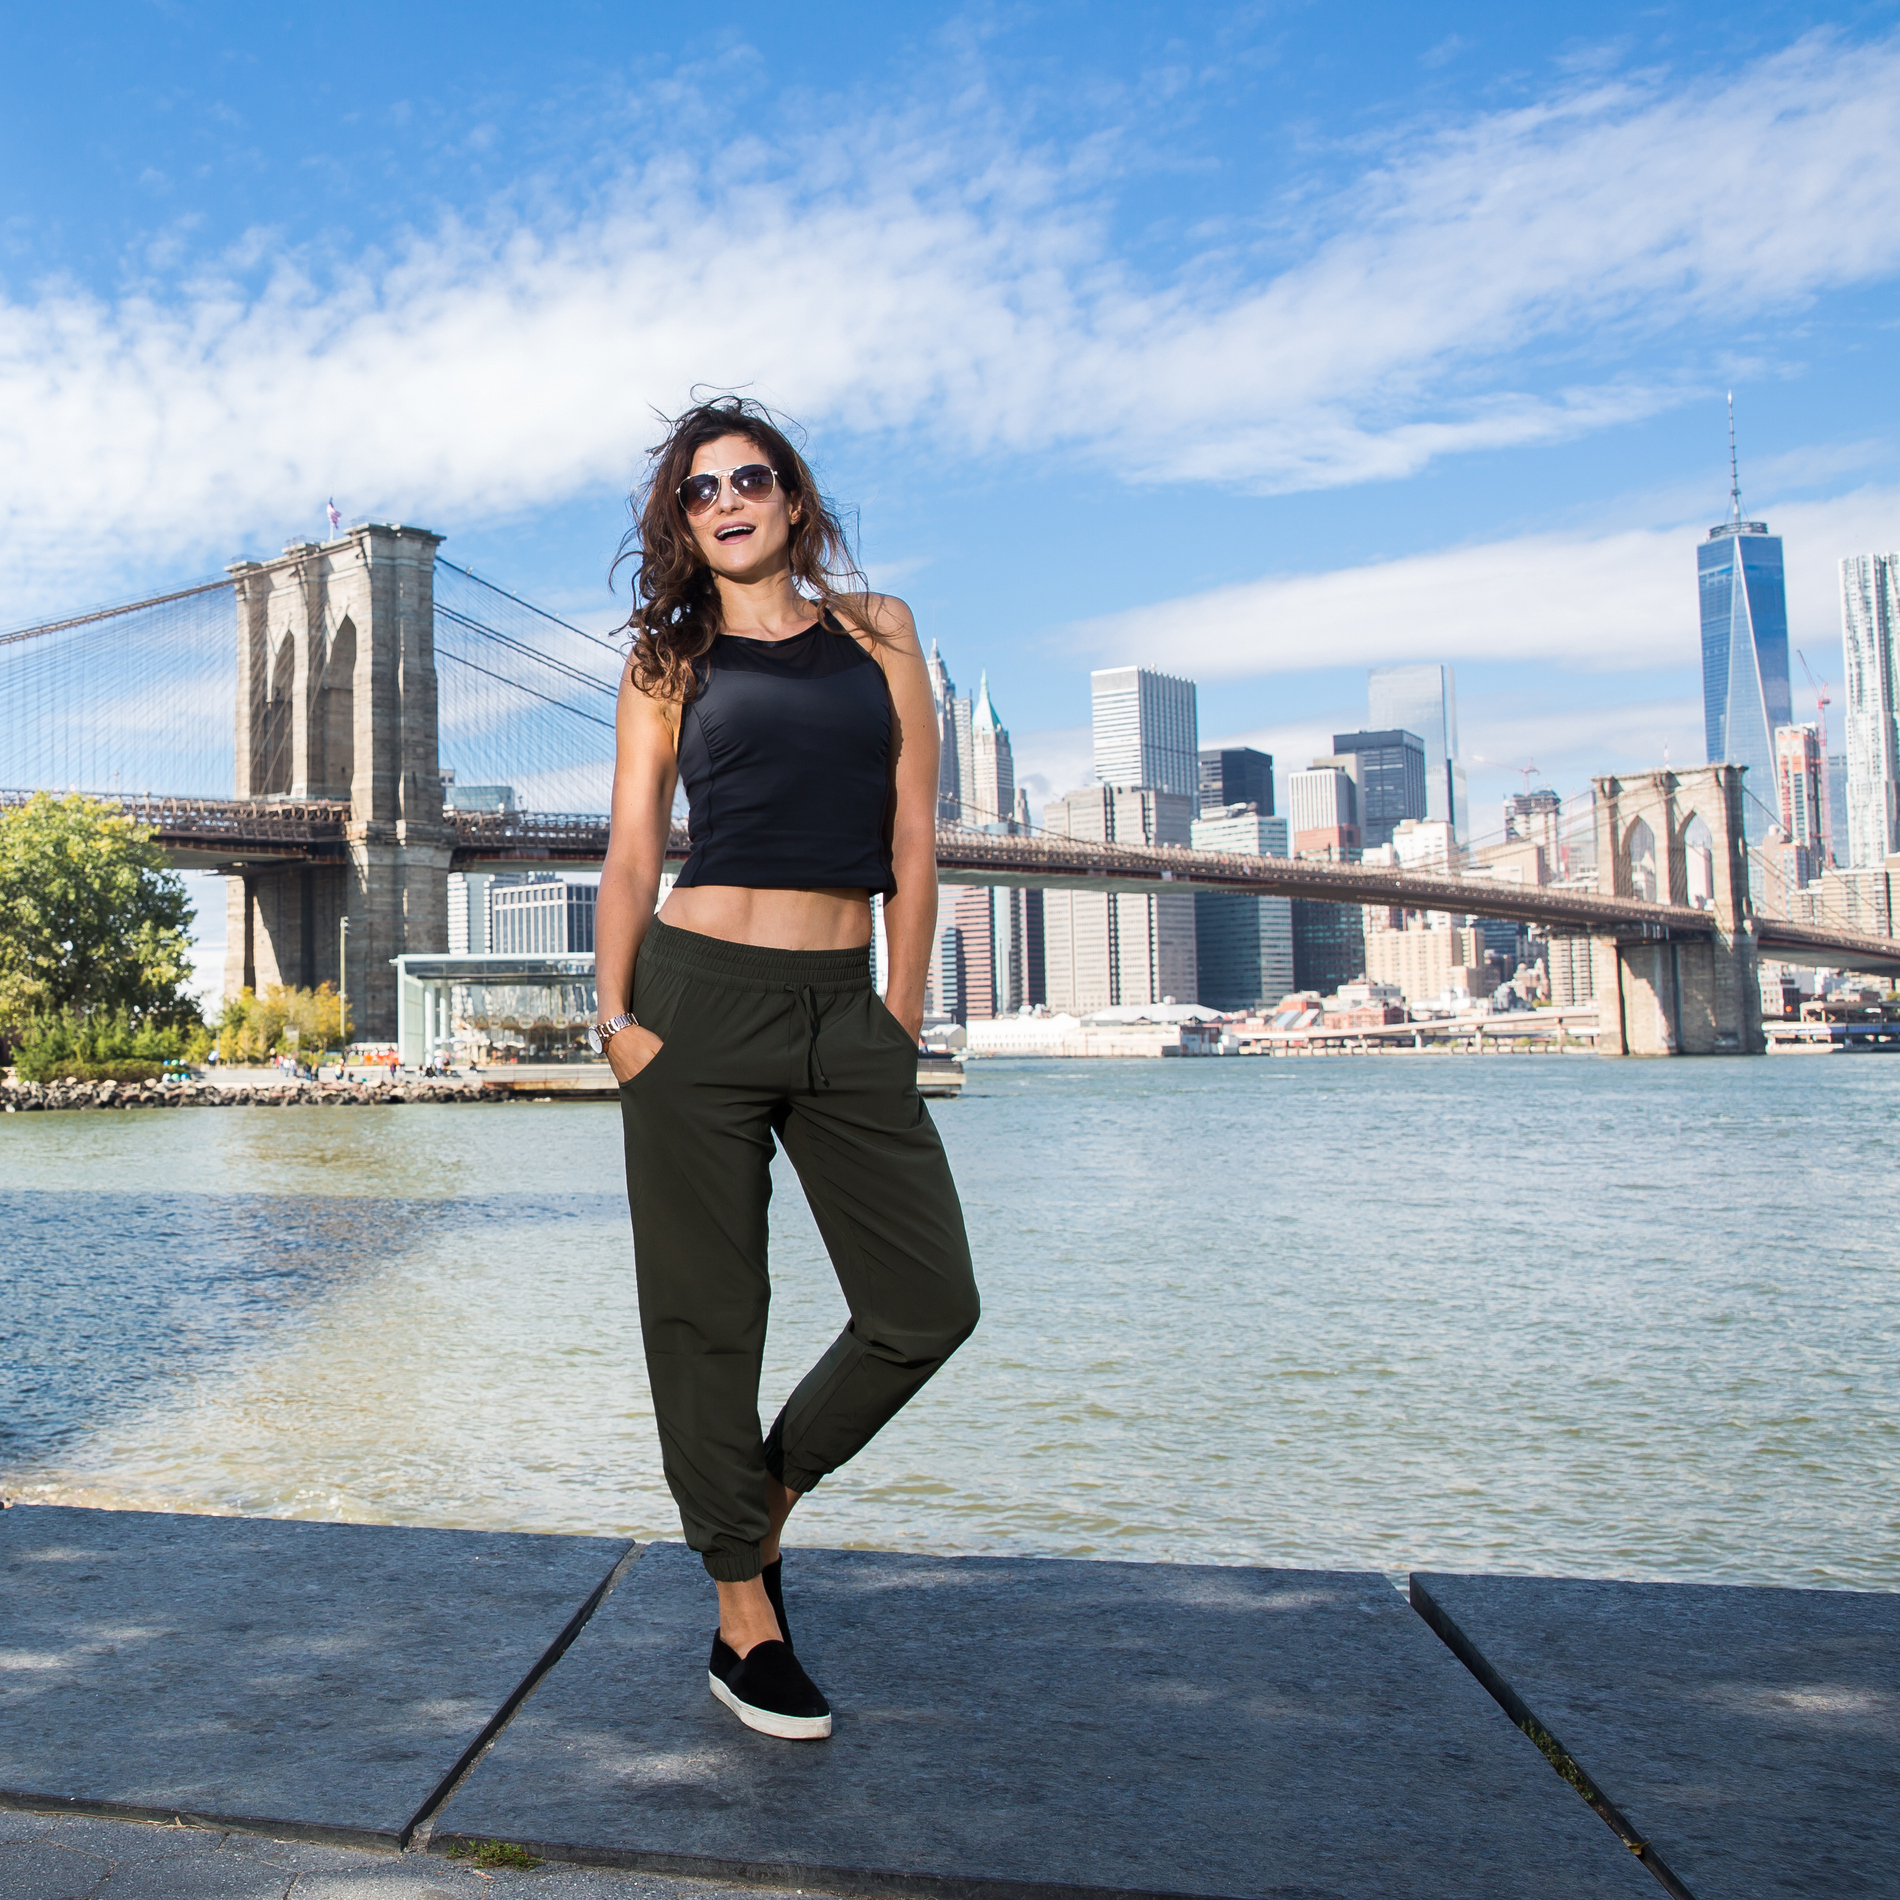 Wearing: the 'Do Everything Cuffed Pant' by Lucy Activewear